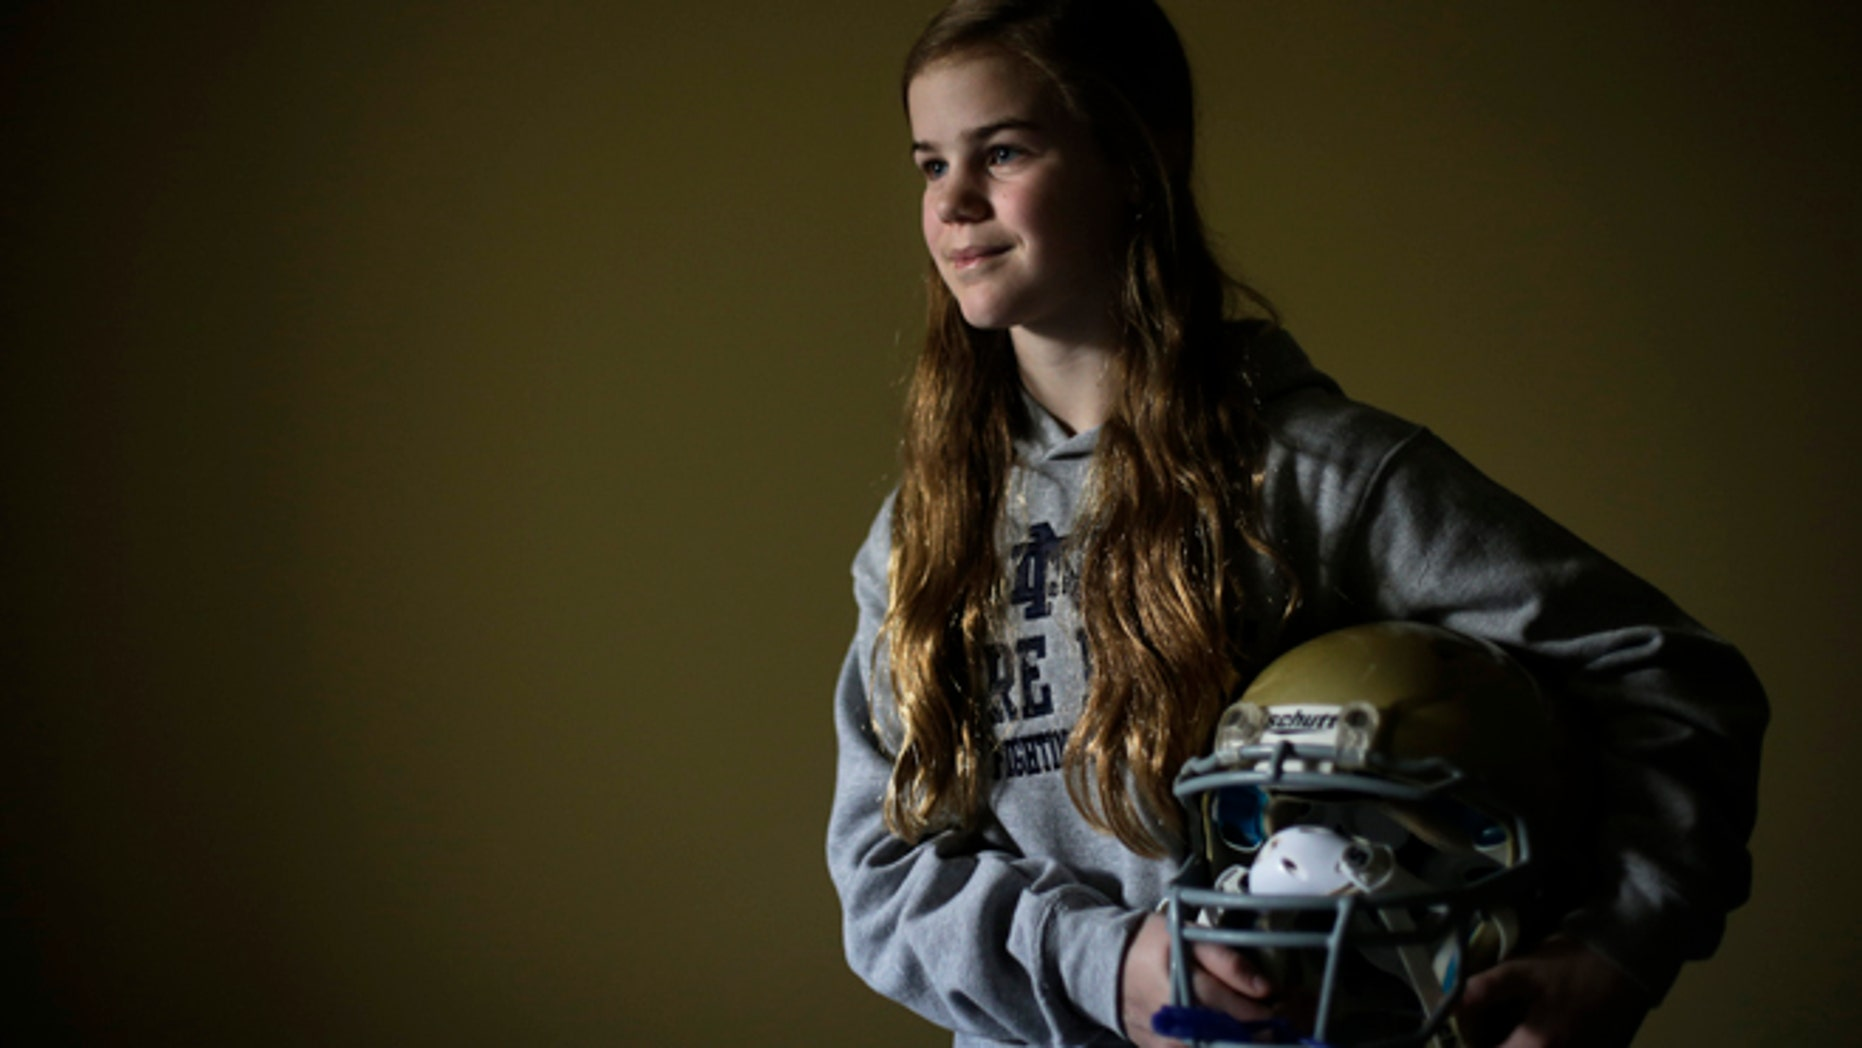 This photo taken Feb. 21, 2013, shows Caroline Pla, 11, posing for a photo with her helmet in Doylestown, Pa.